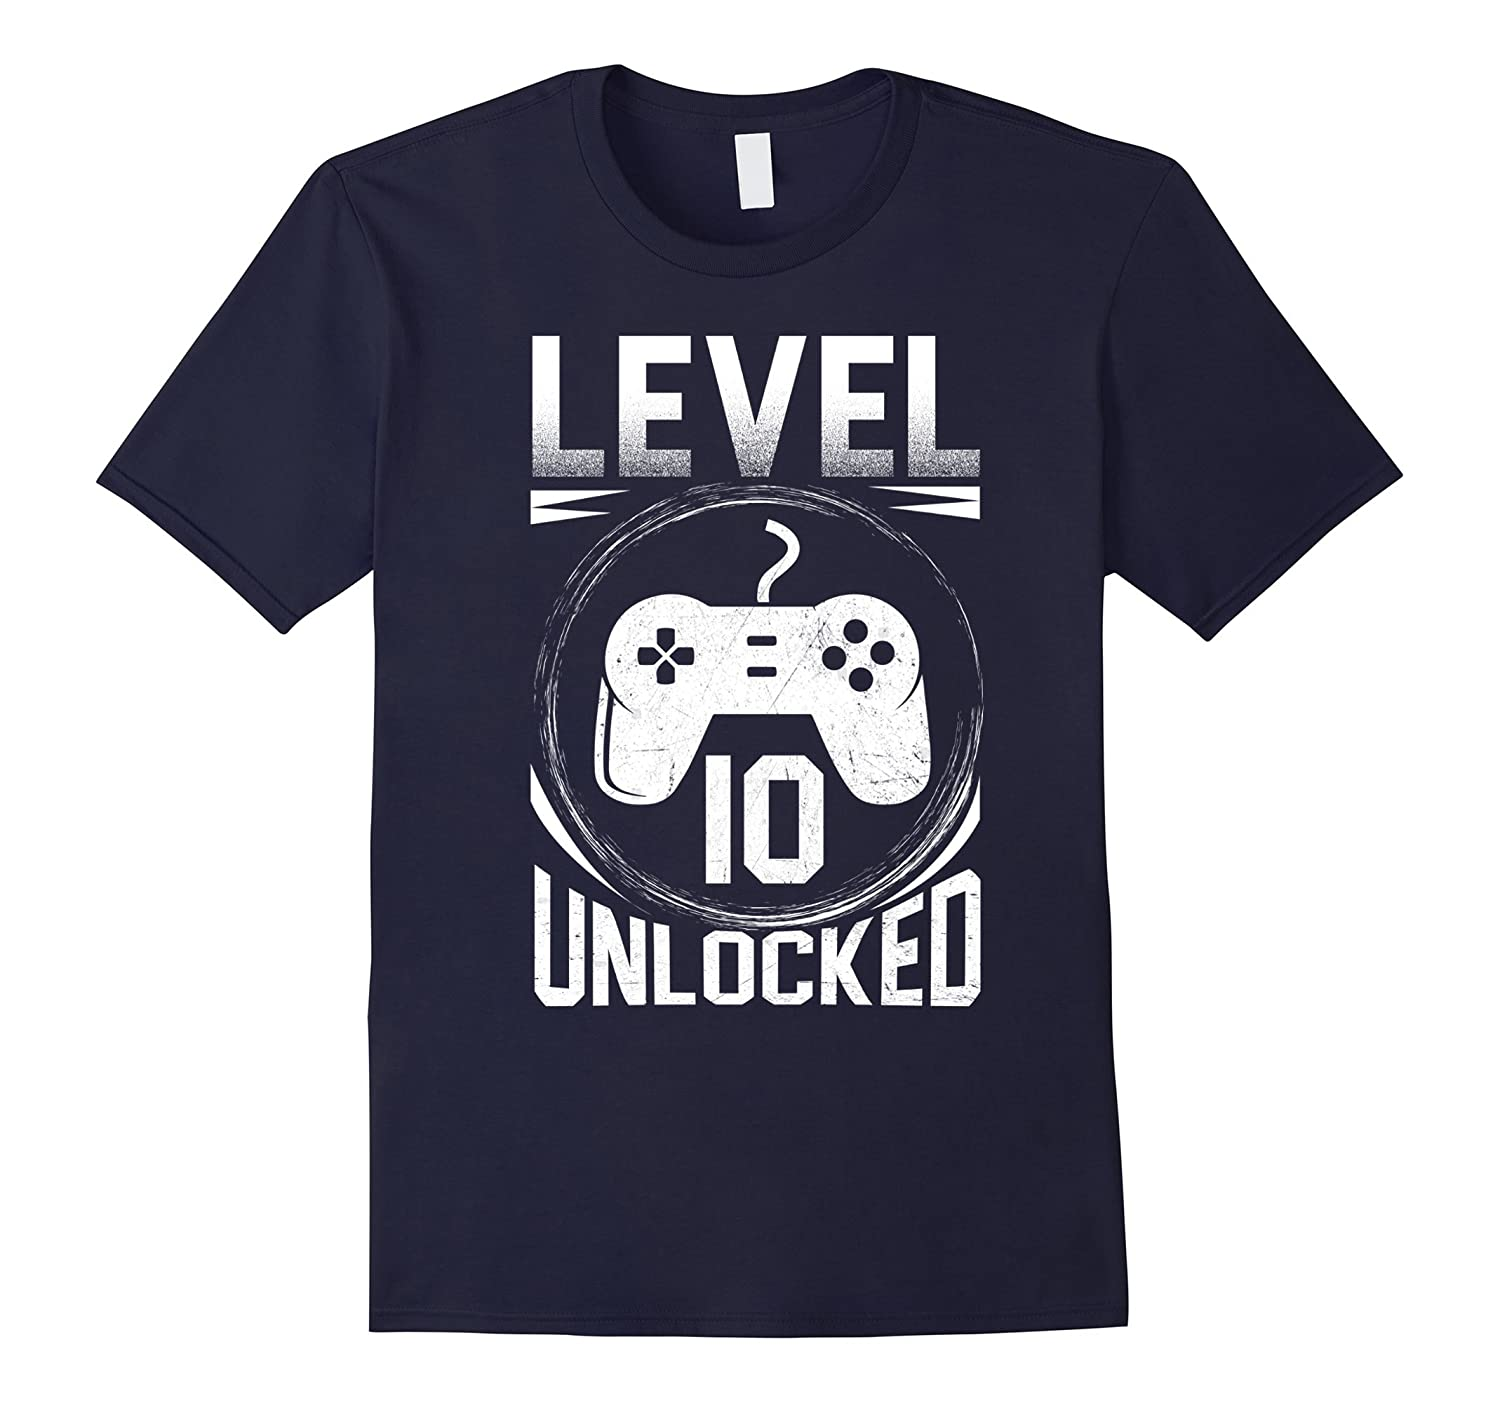 10th Birthday Shirt Level 10 Unlocked Shirt Video Games-FL